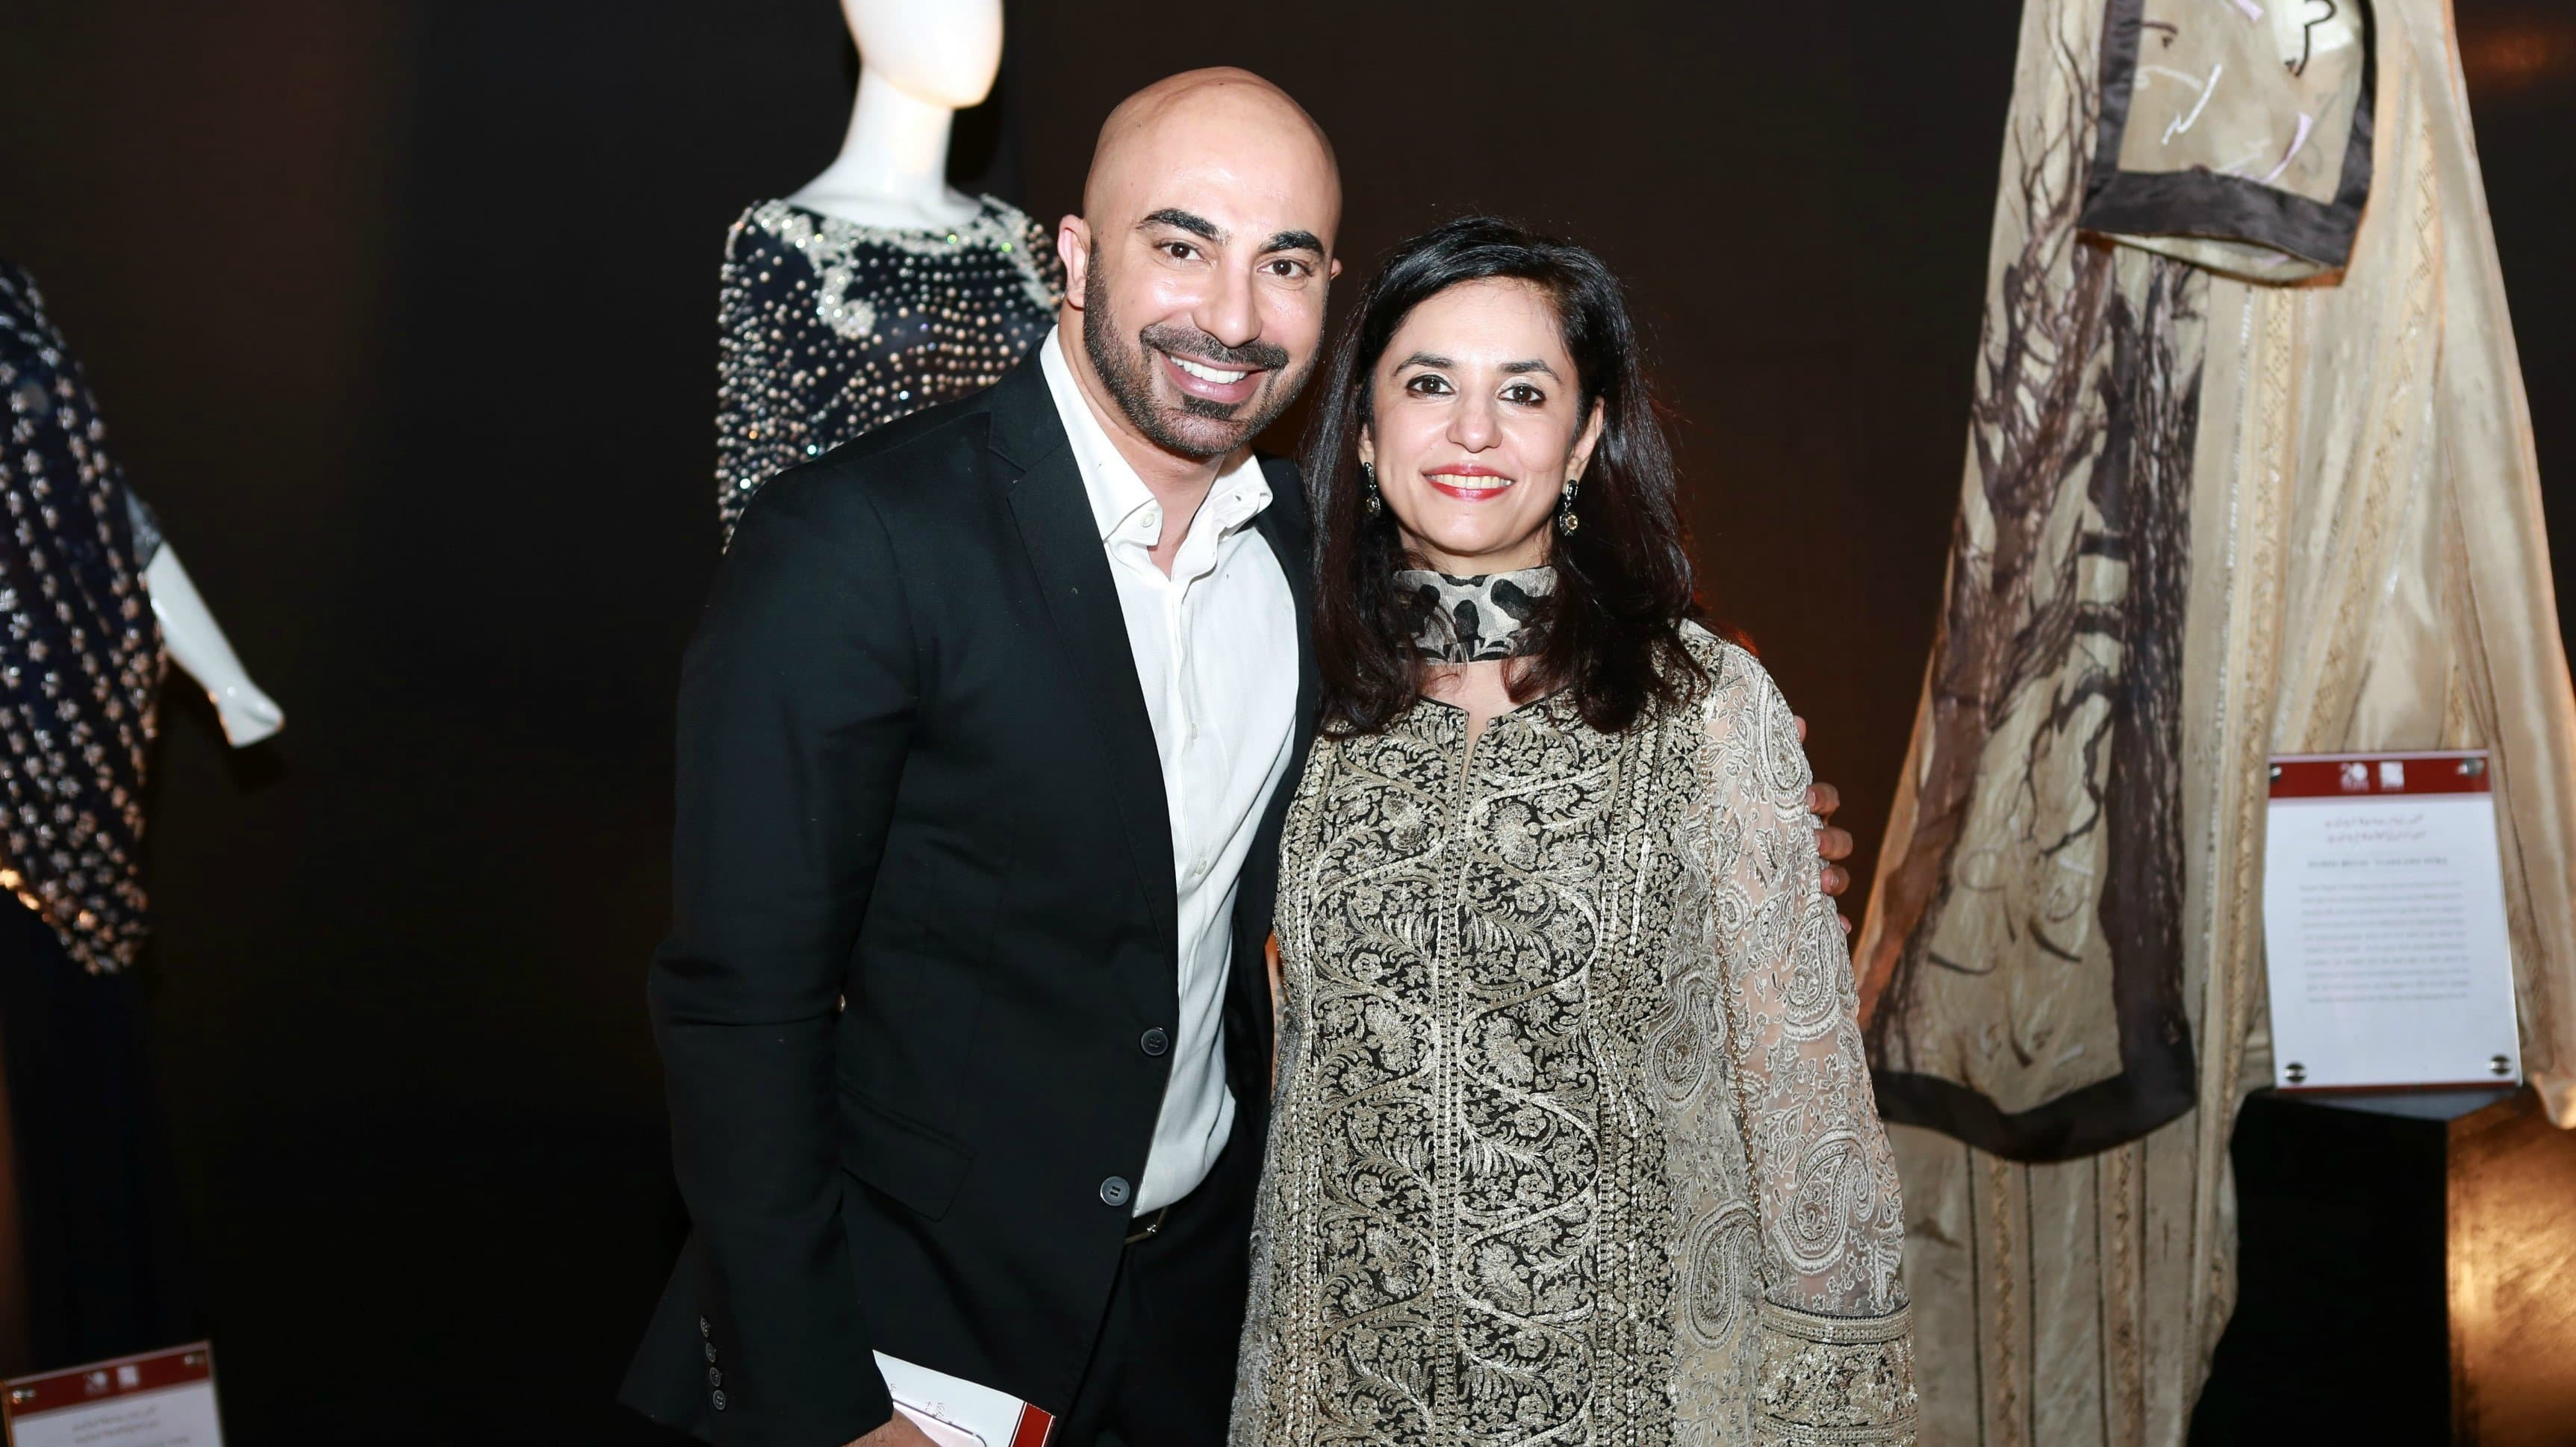 HSY and Kashf Foundation joined forces to show off Pakistan's indigenous crafts in this exhibition